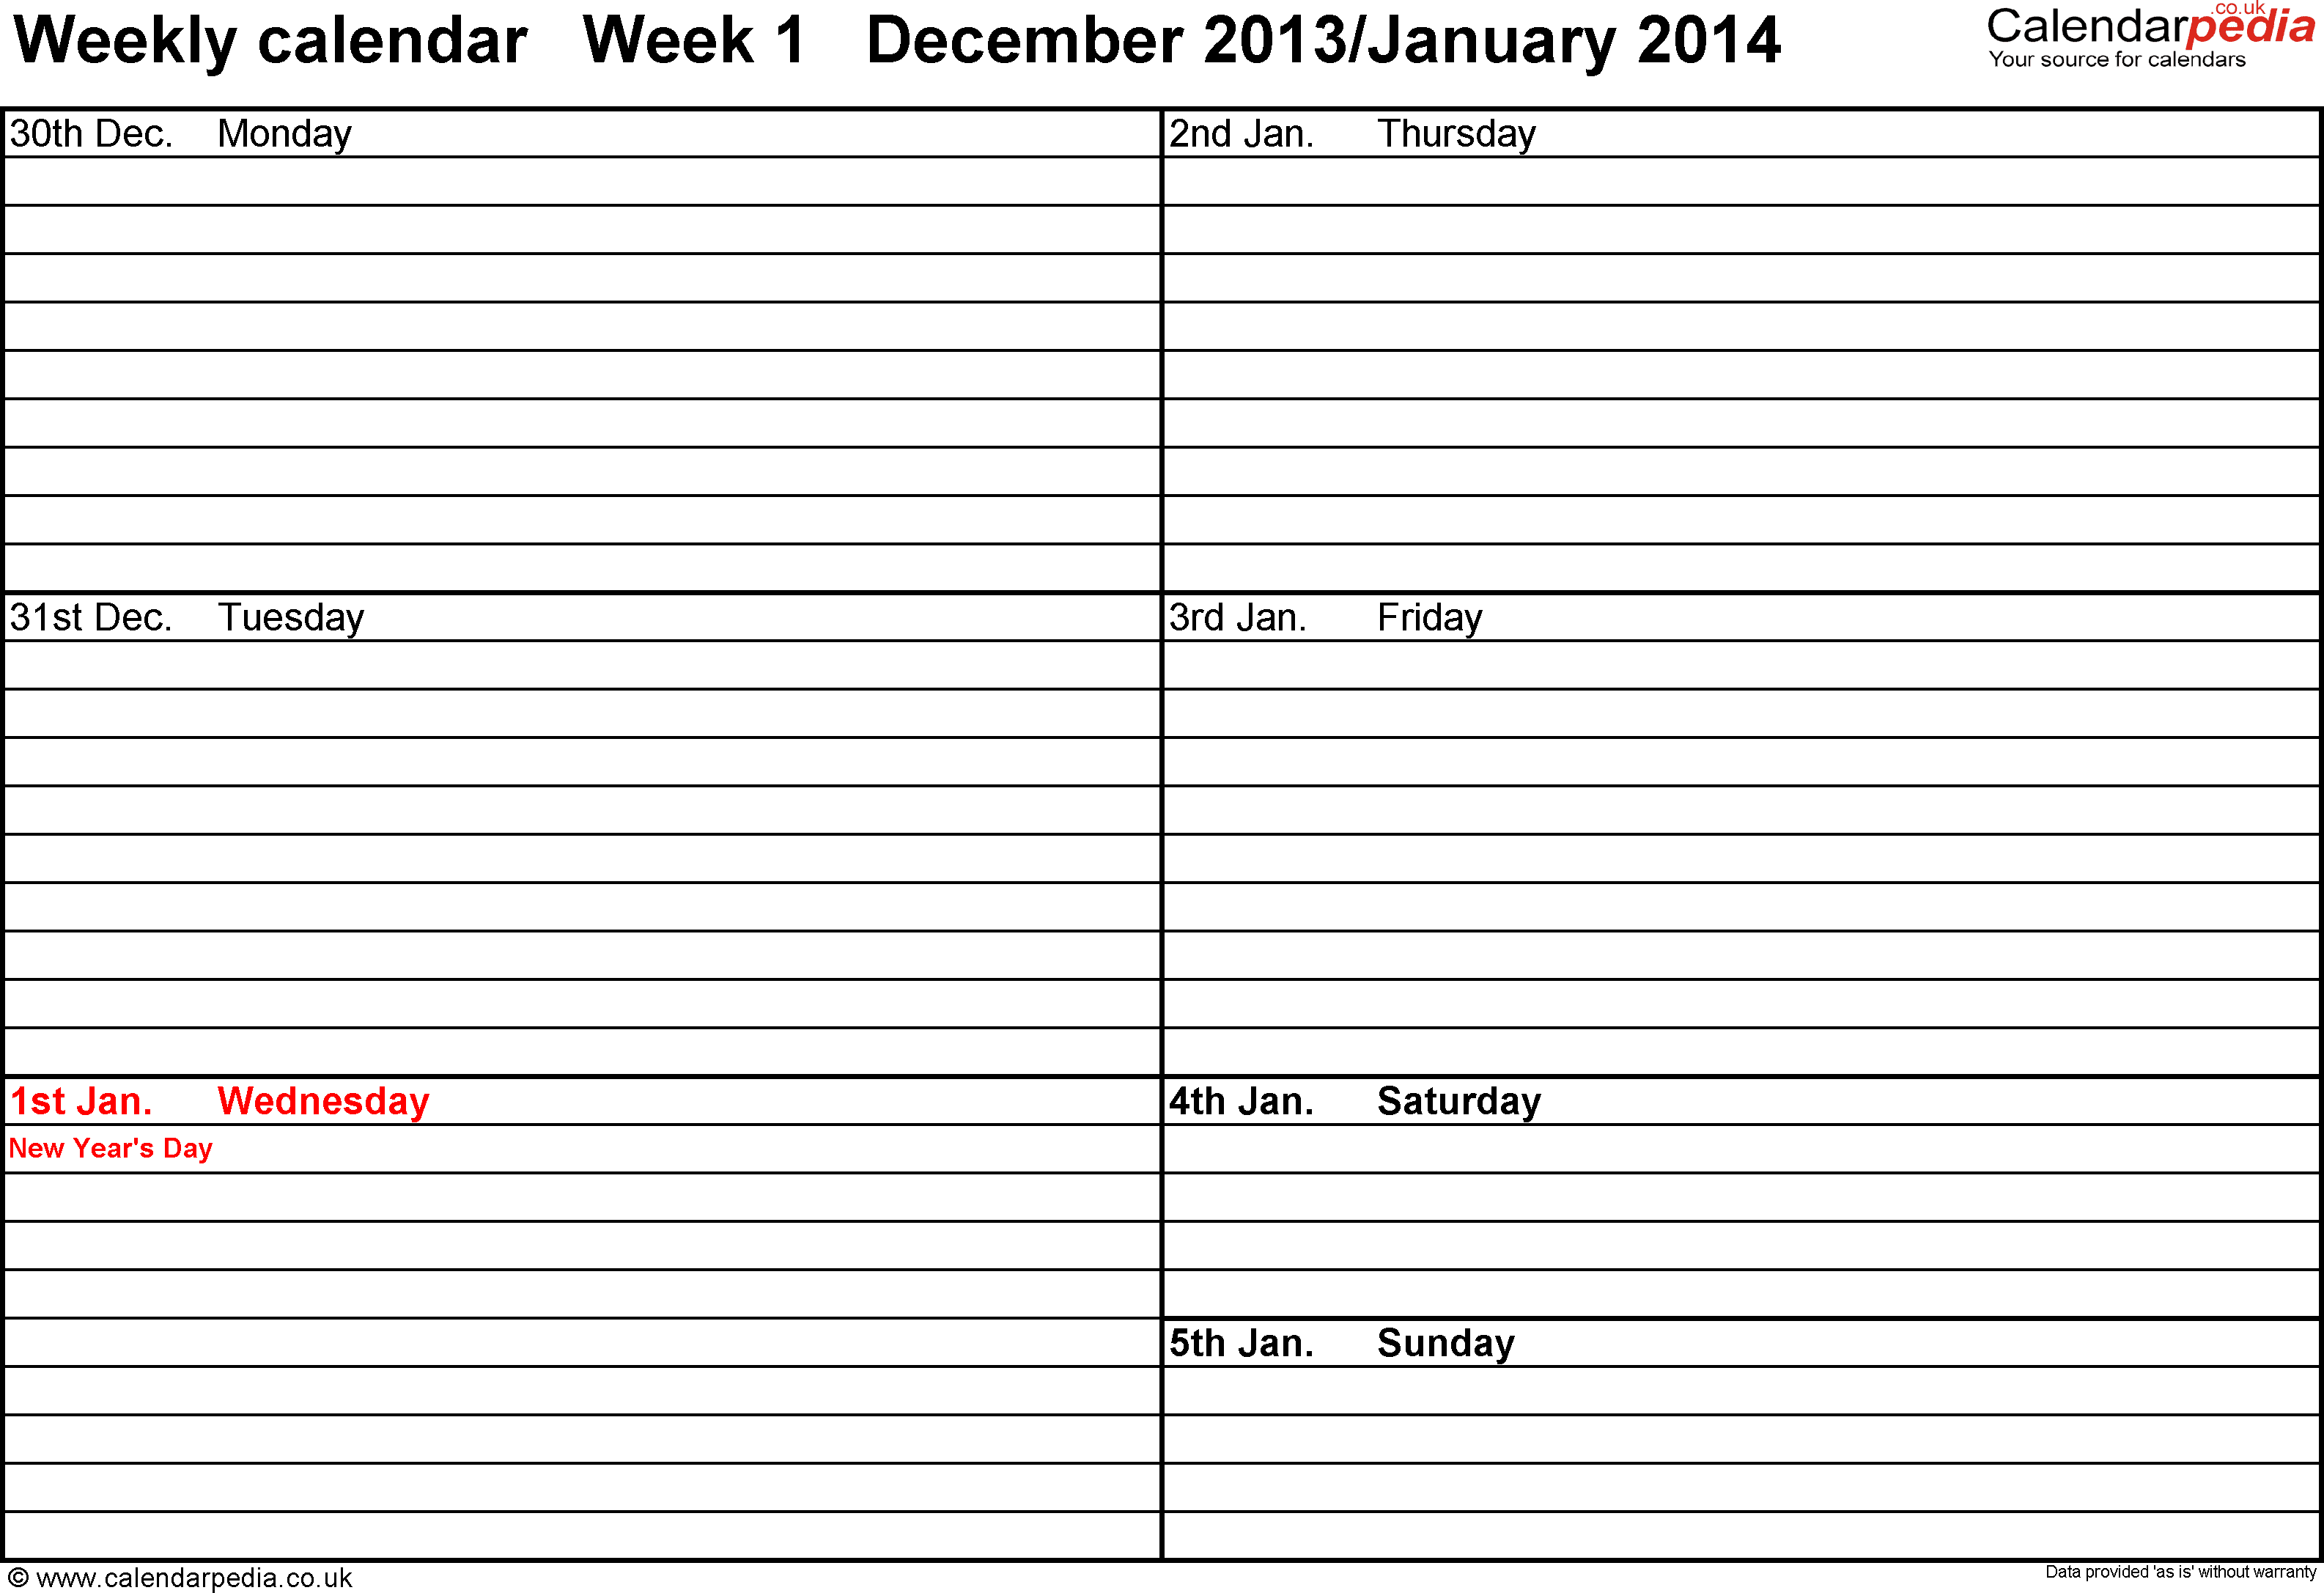 Weekly calendar 2014 UK - free printable templates for Word